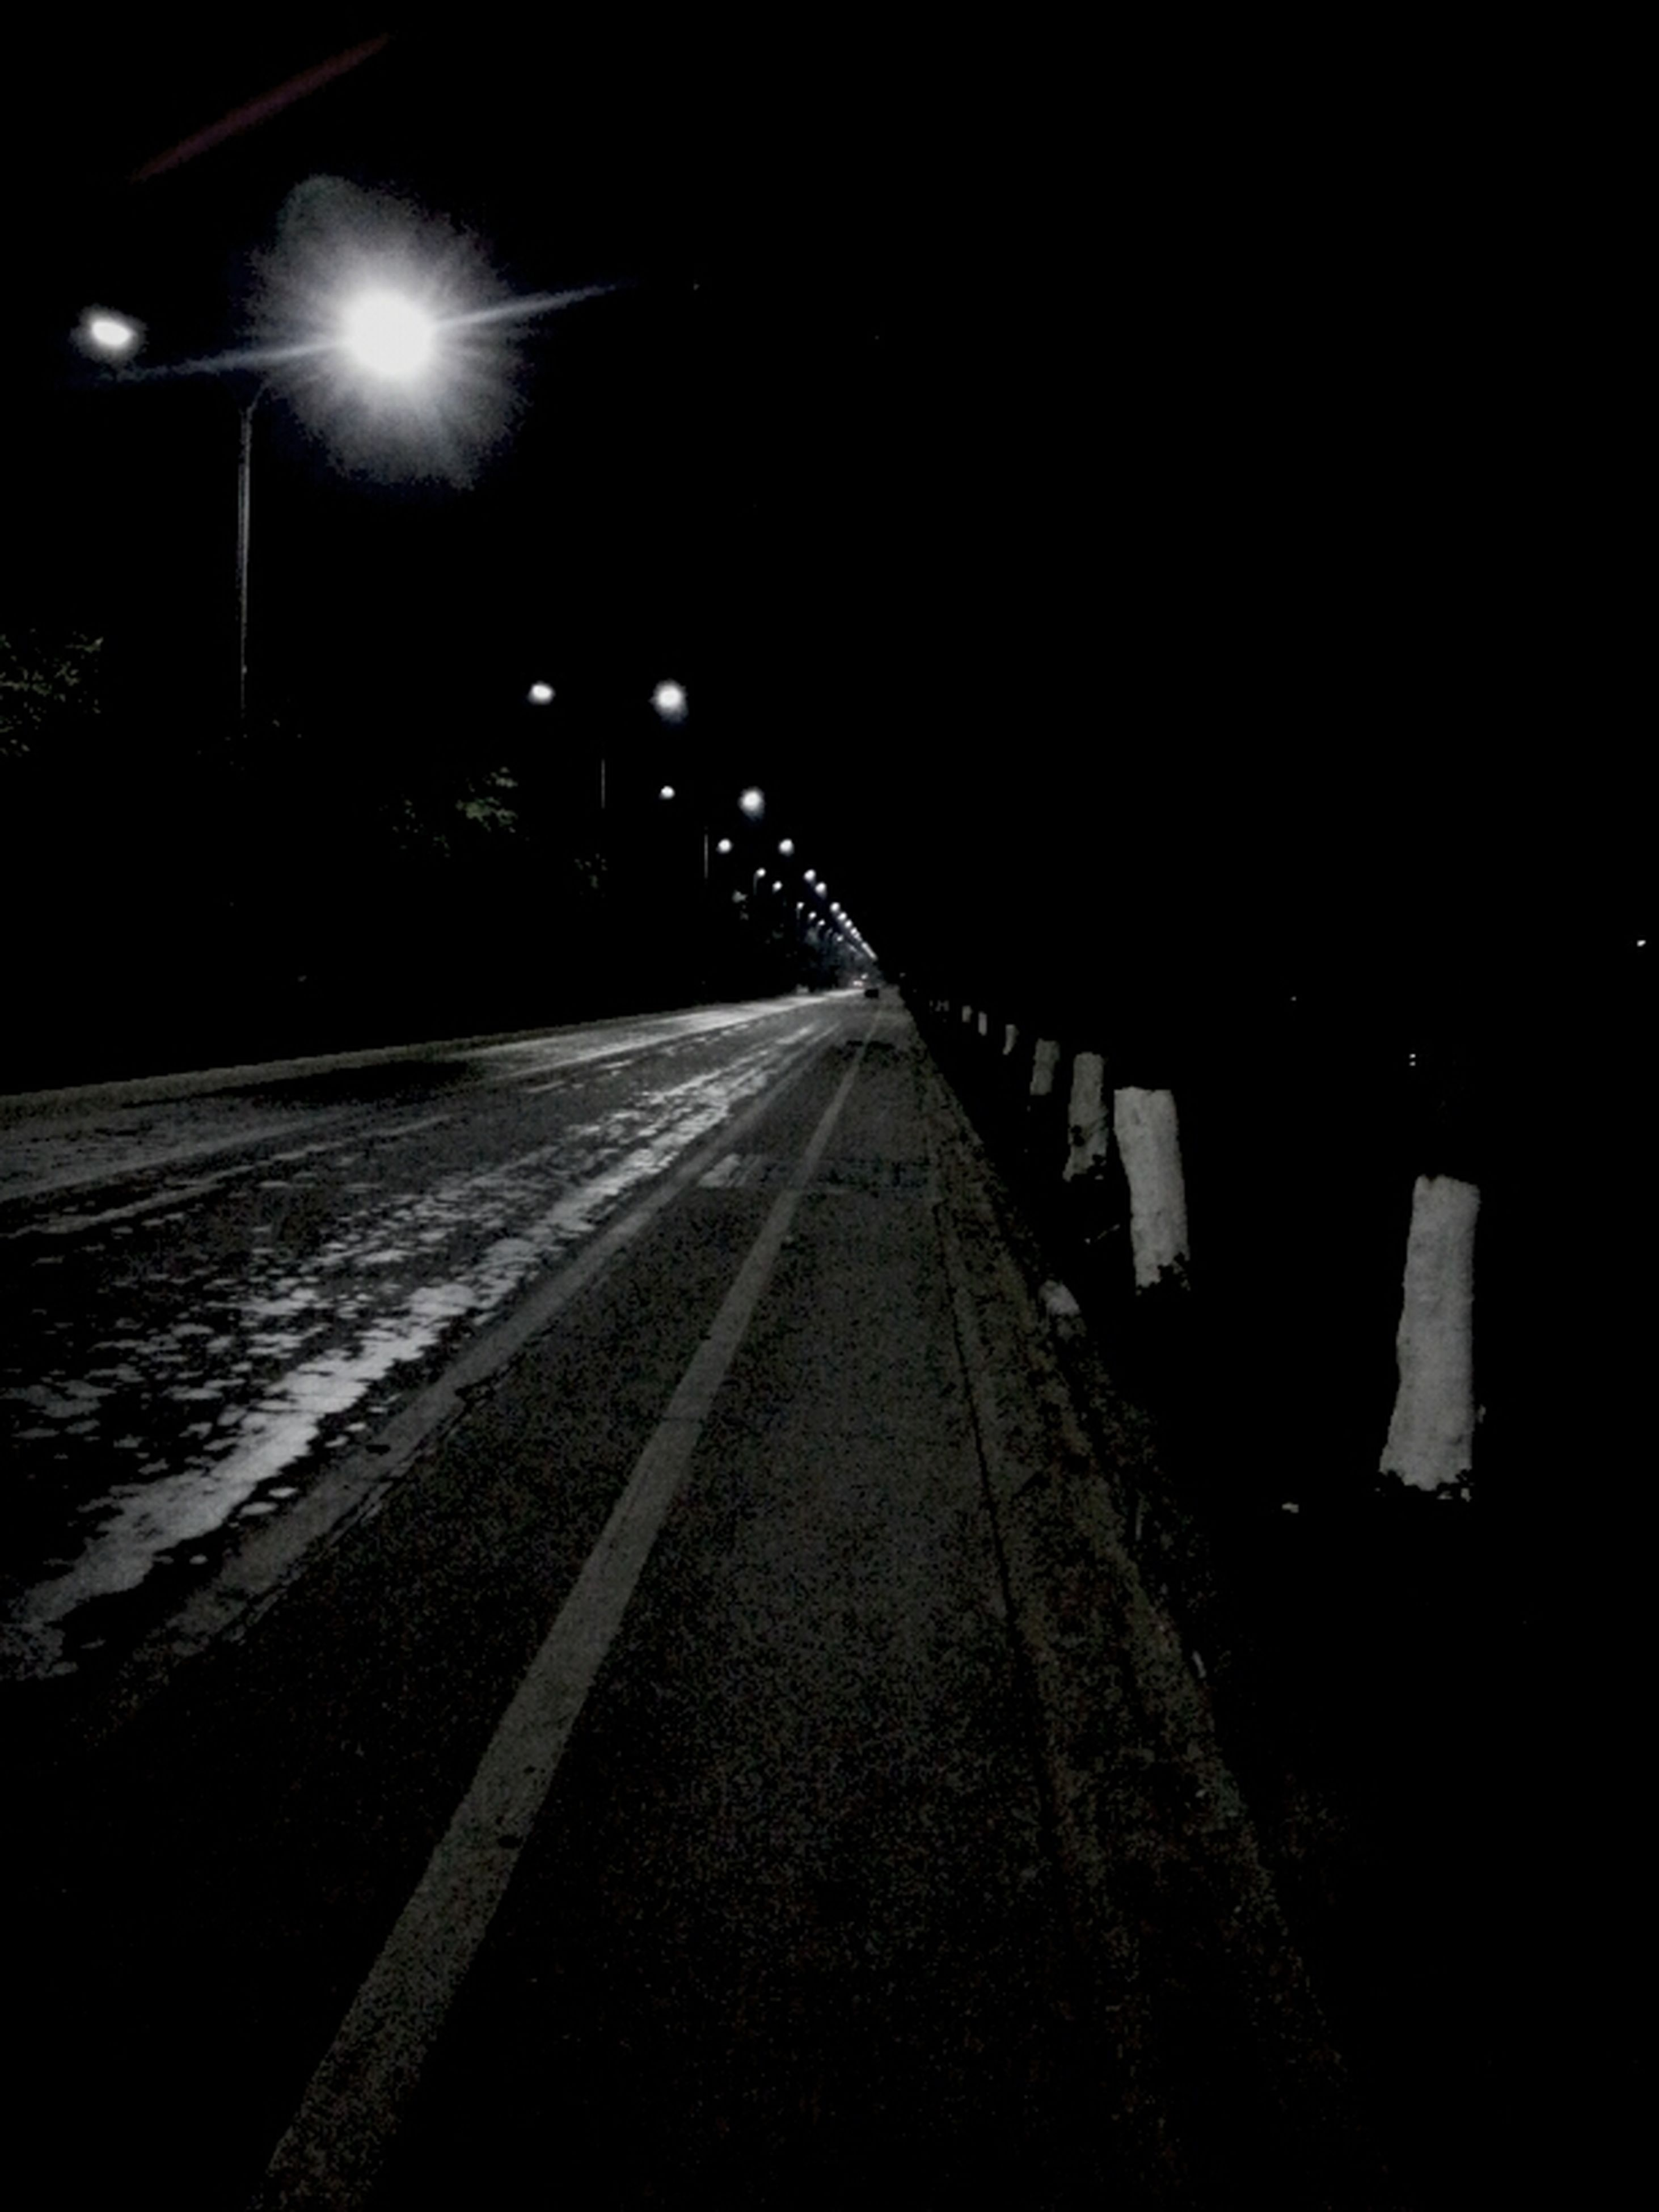 night, illuminated, the way forward, transportation, diminishing perspective, street light, road, lighting equipment, vanishing point, street, dark, empty, copy space, long, snow, light - natural phenomenon, road marking, outdoors, winter, no people